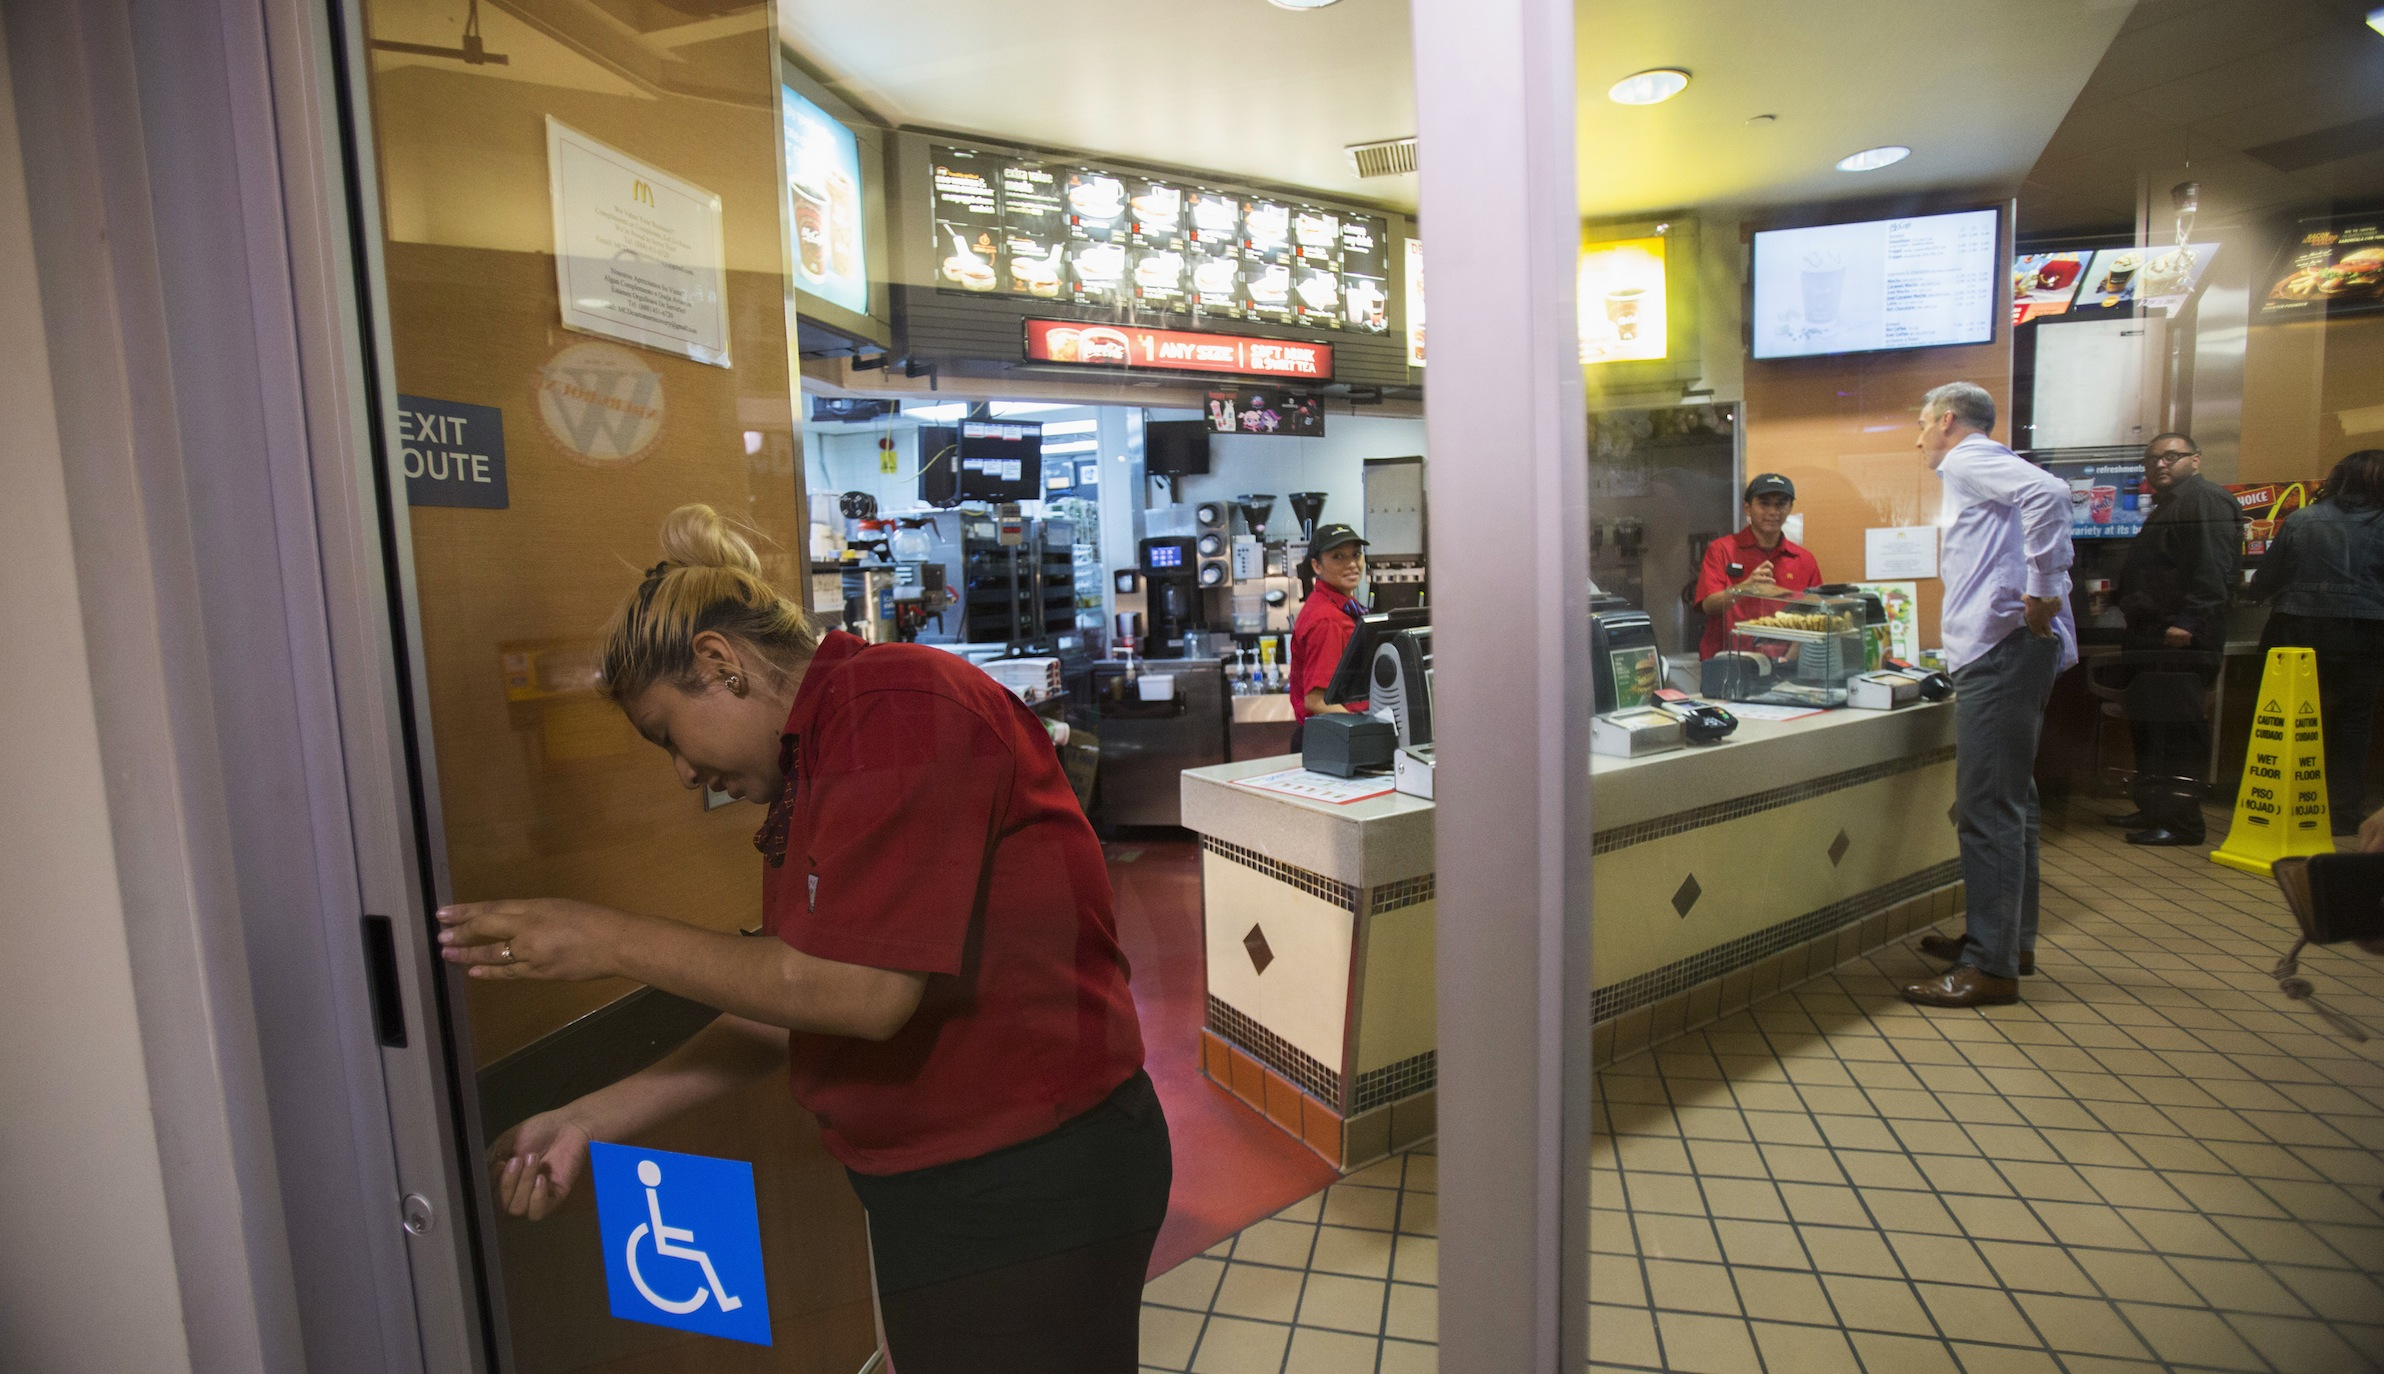 An employee locks the door of a McDonald's restaurant during a protest demanding better wages for fast-food workers, in Los Angeles, California September 4, 2014. U.S. fast-food workers staged protests in some 150 cities on Thursday in a fight for higher pay, and organizers said more than 450 were arrested from Manhattan's Times Square to Los Angeles. About 400 protesters clogged Times Square during morning rush hour in the latest of ongoing actions aimed at raising their wage to $15 an hour. In Los Angeles, protesters confronted managers inside two McDonald's restaurants.  REUTERS/Mario Anzuoni  (UNITED STATES - Tags: BUSINESS FOOD CIVIL UNREST EMPLOYMENT) - RTR4506F